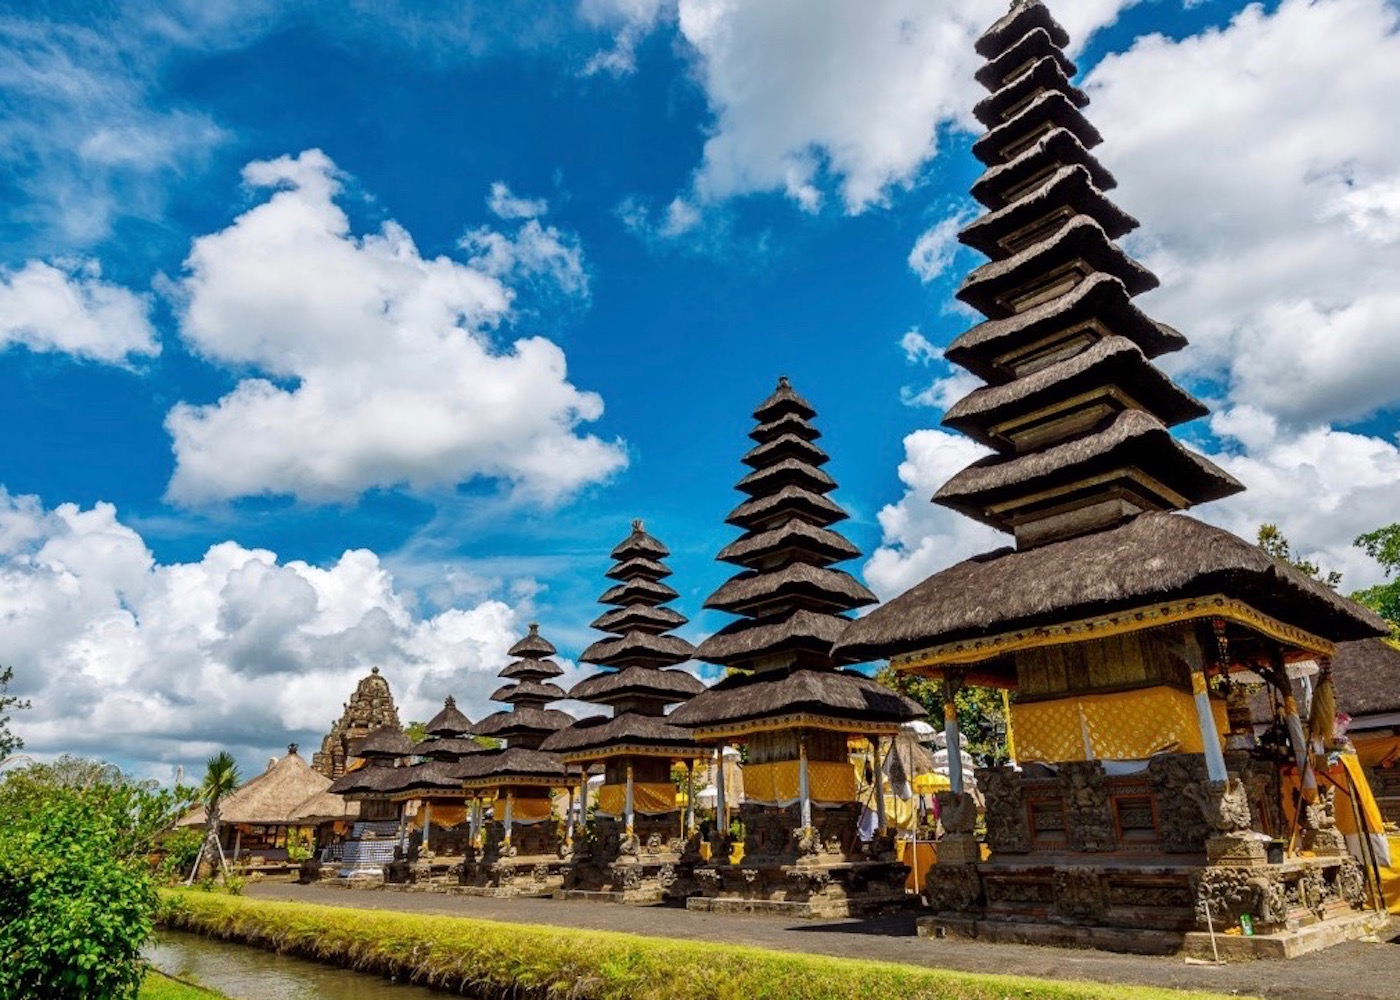 Pura Taman Ayun - one of the most beautiful temples in Bali, Indonesia